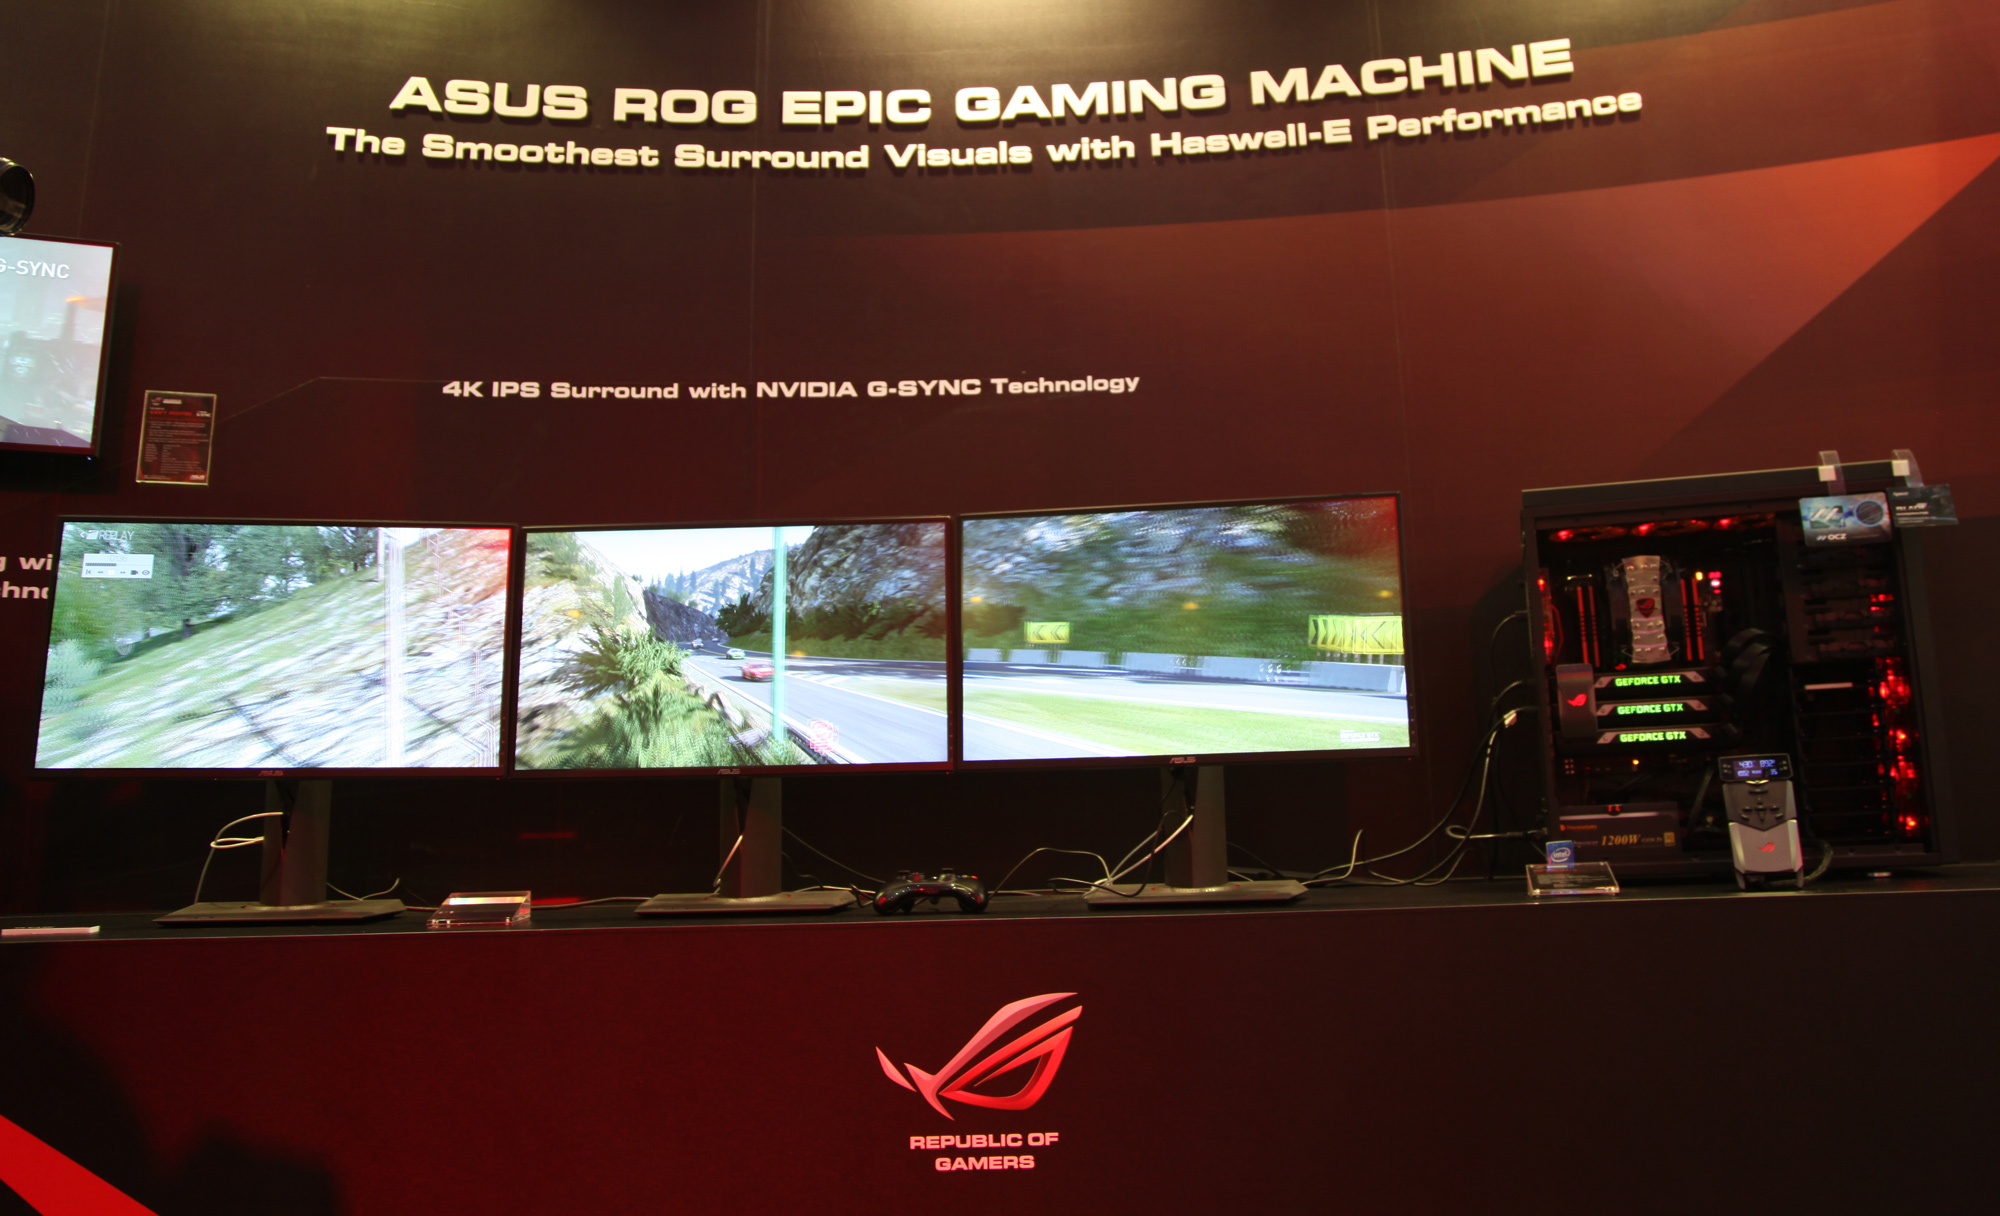 Computex 2015 ASUS ROG Announces Latest Range Of Gaming Gear